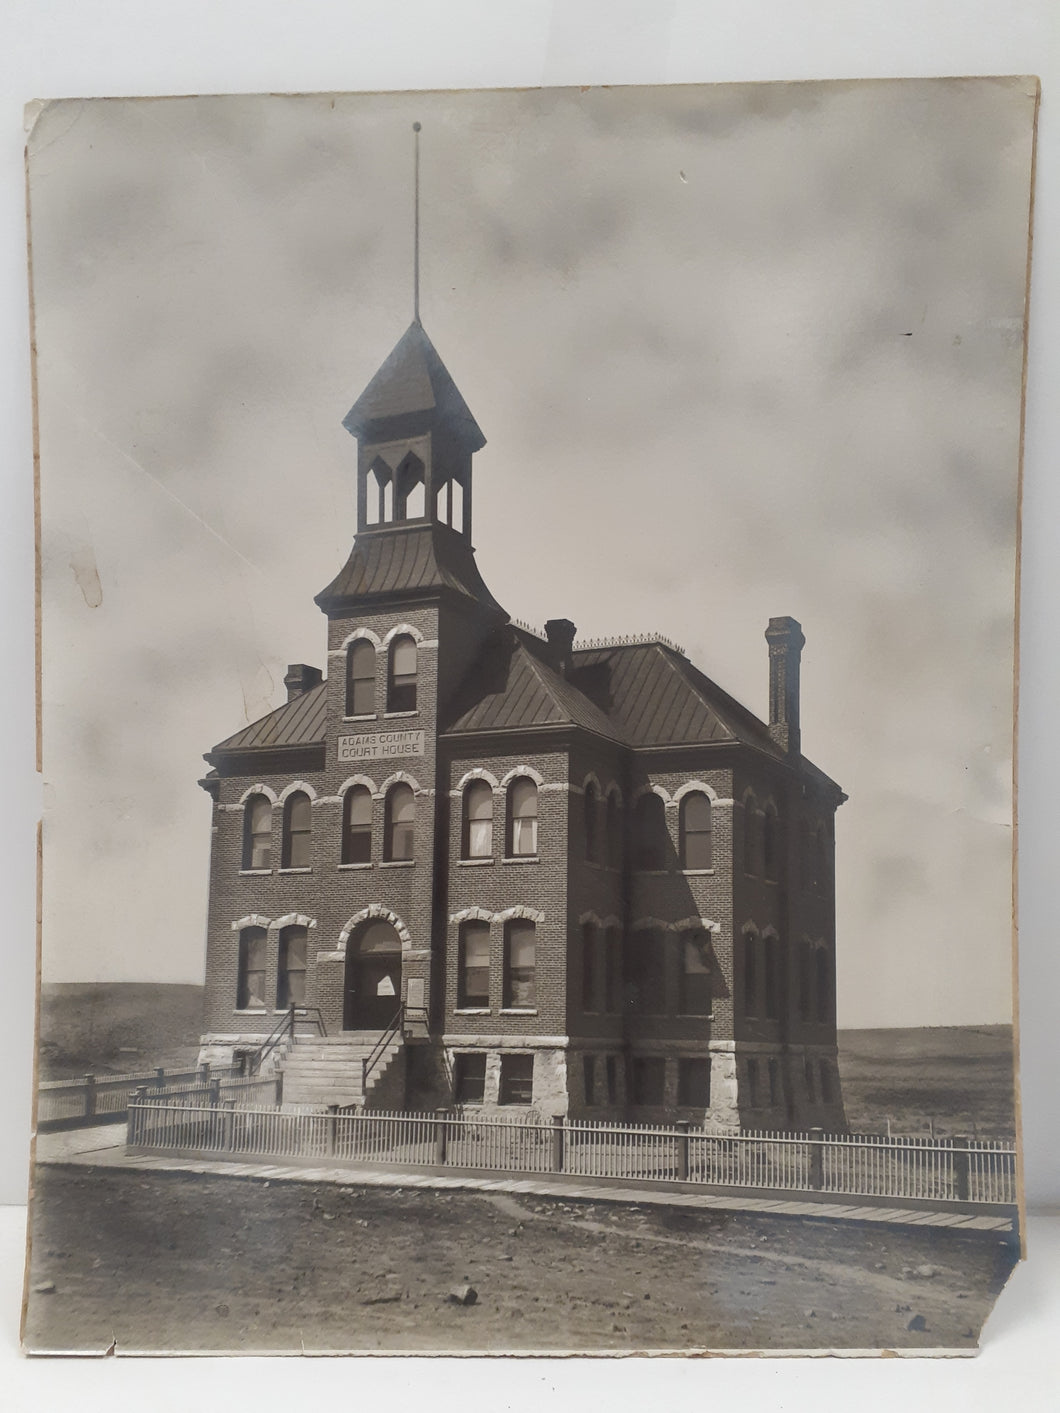 Large Original Adams Washington State Court House Photo 1900's